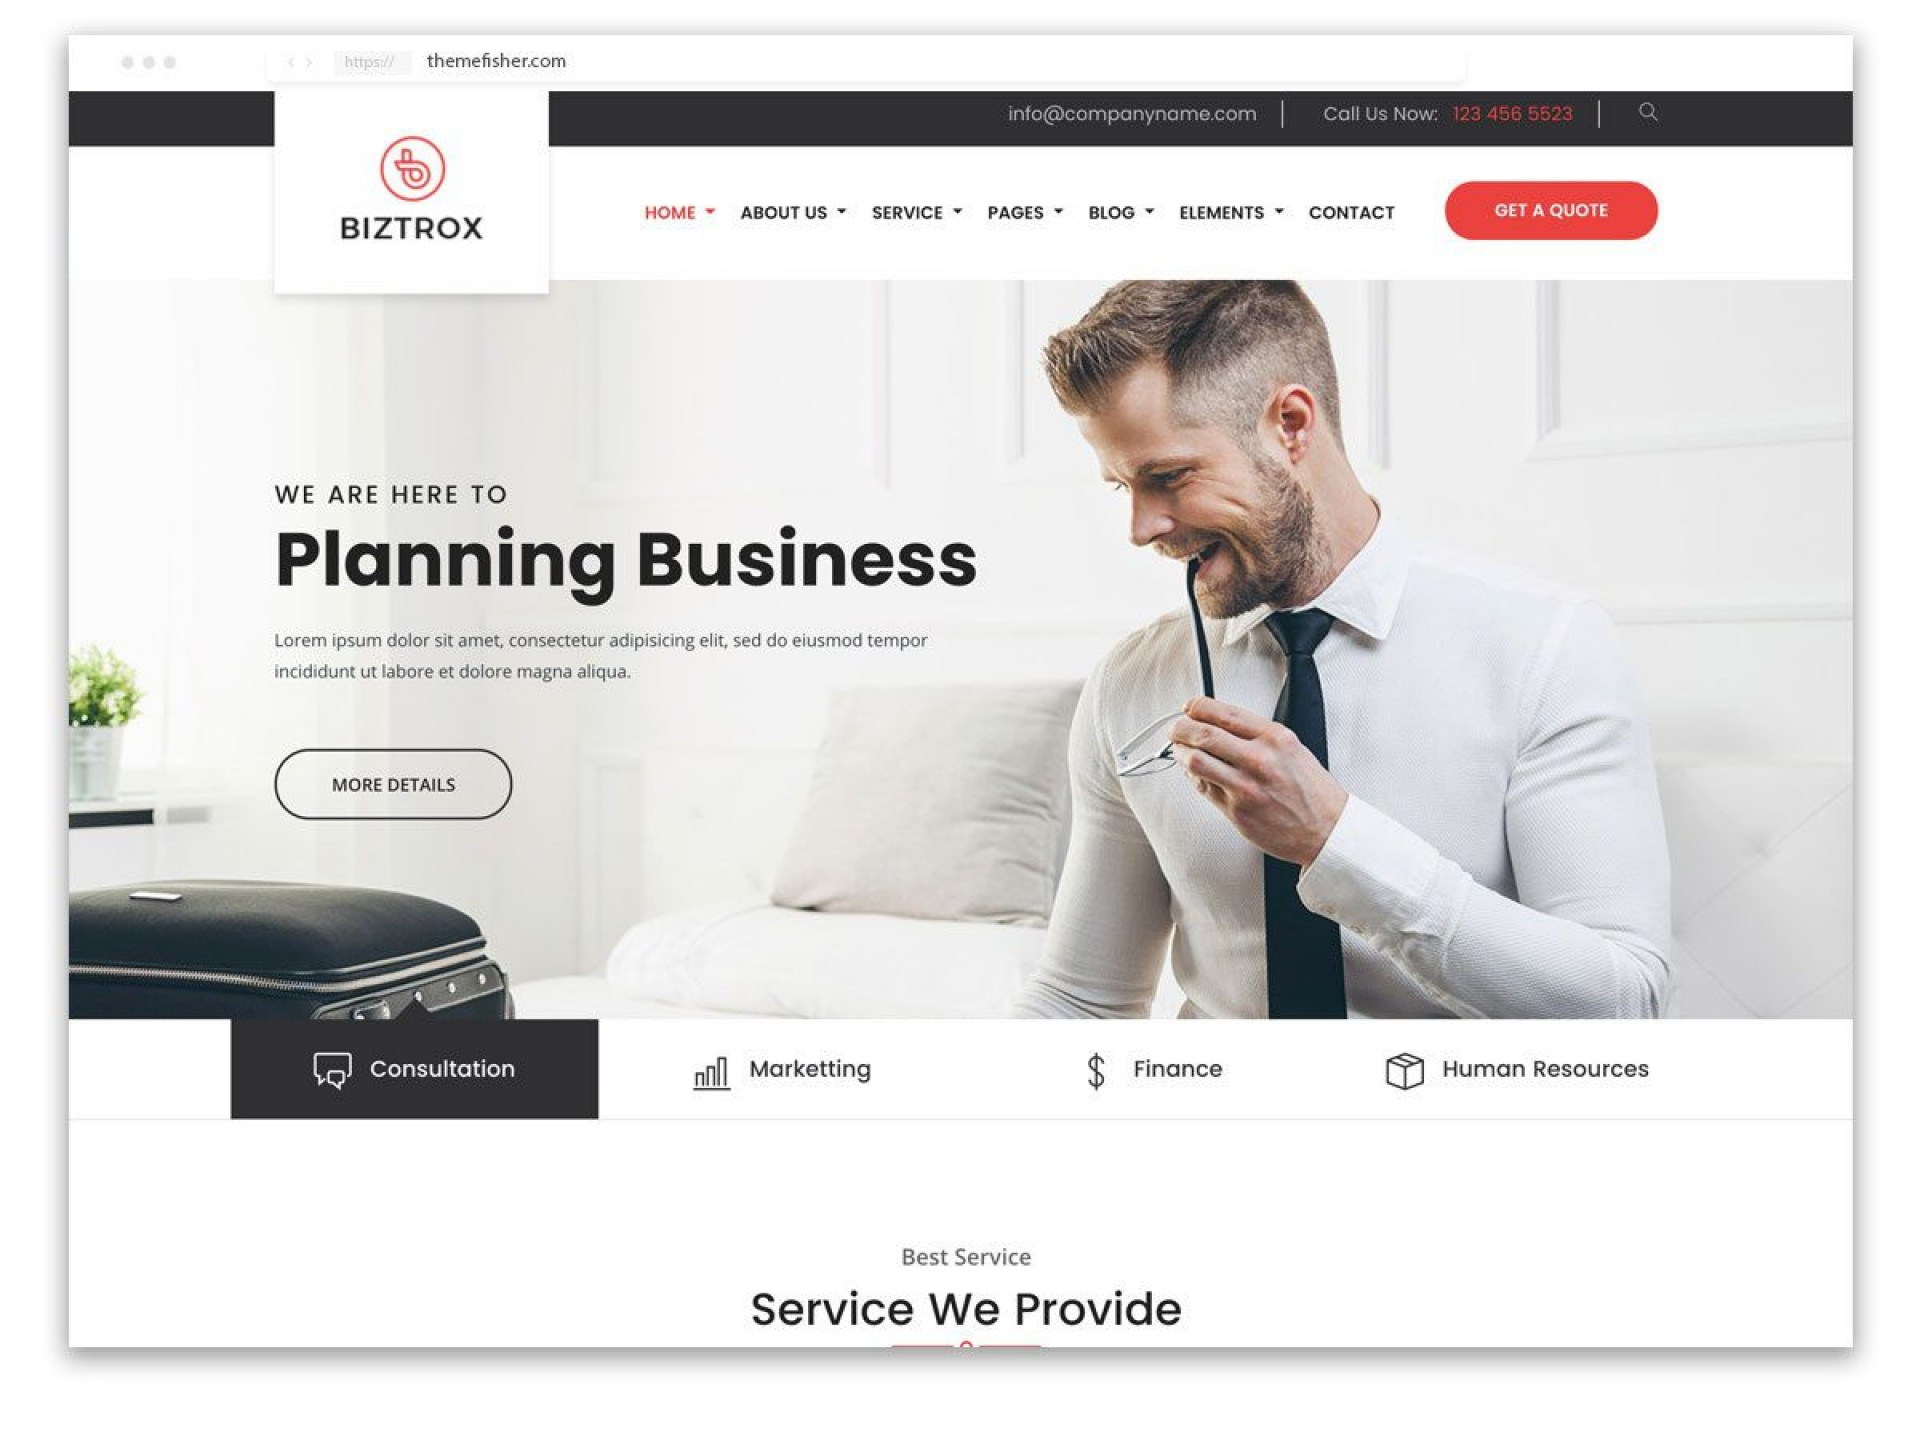 004 Staggering Free Website Template Download Html And Cs Jquery For Busines Image  Business1920